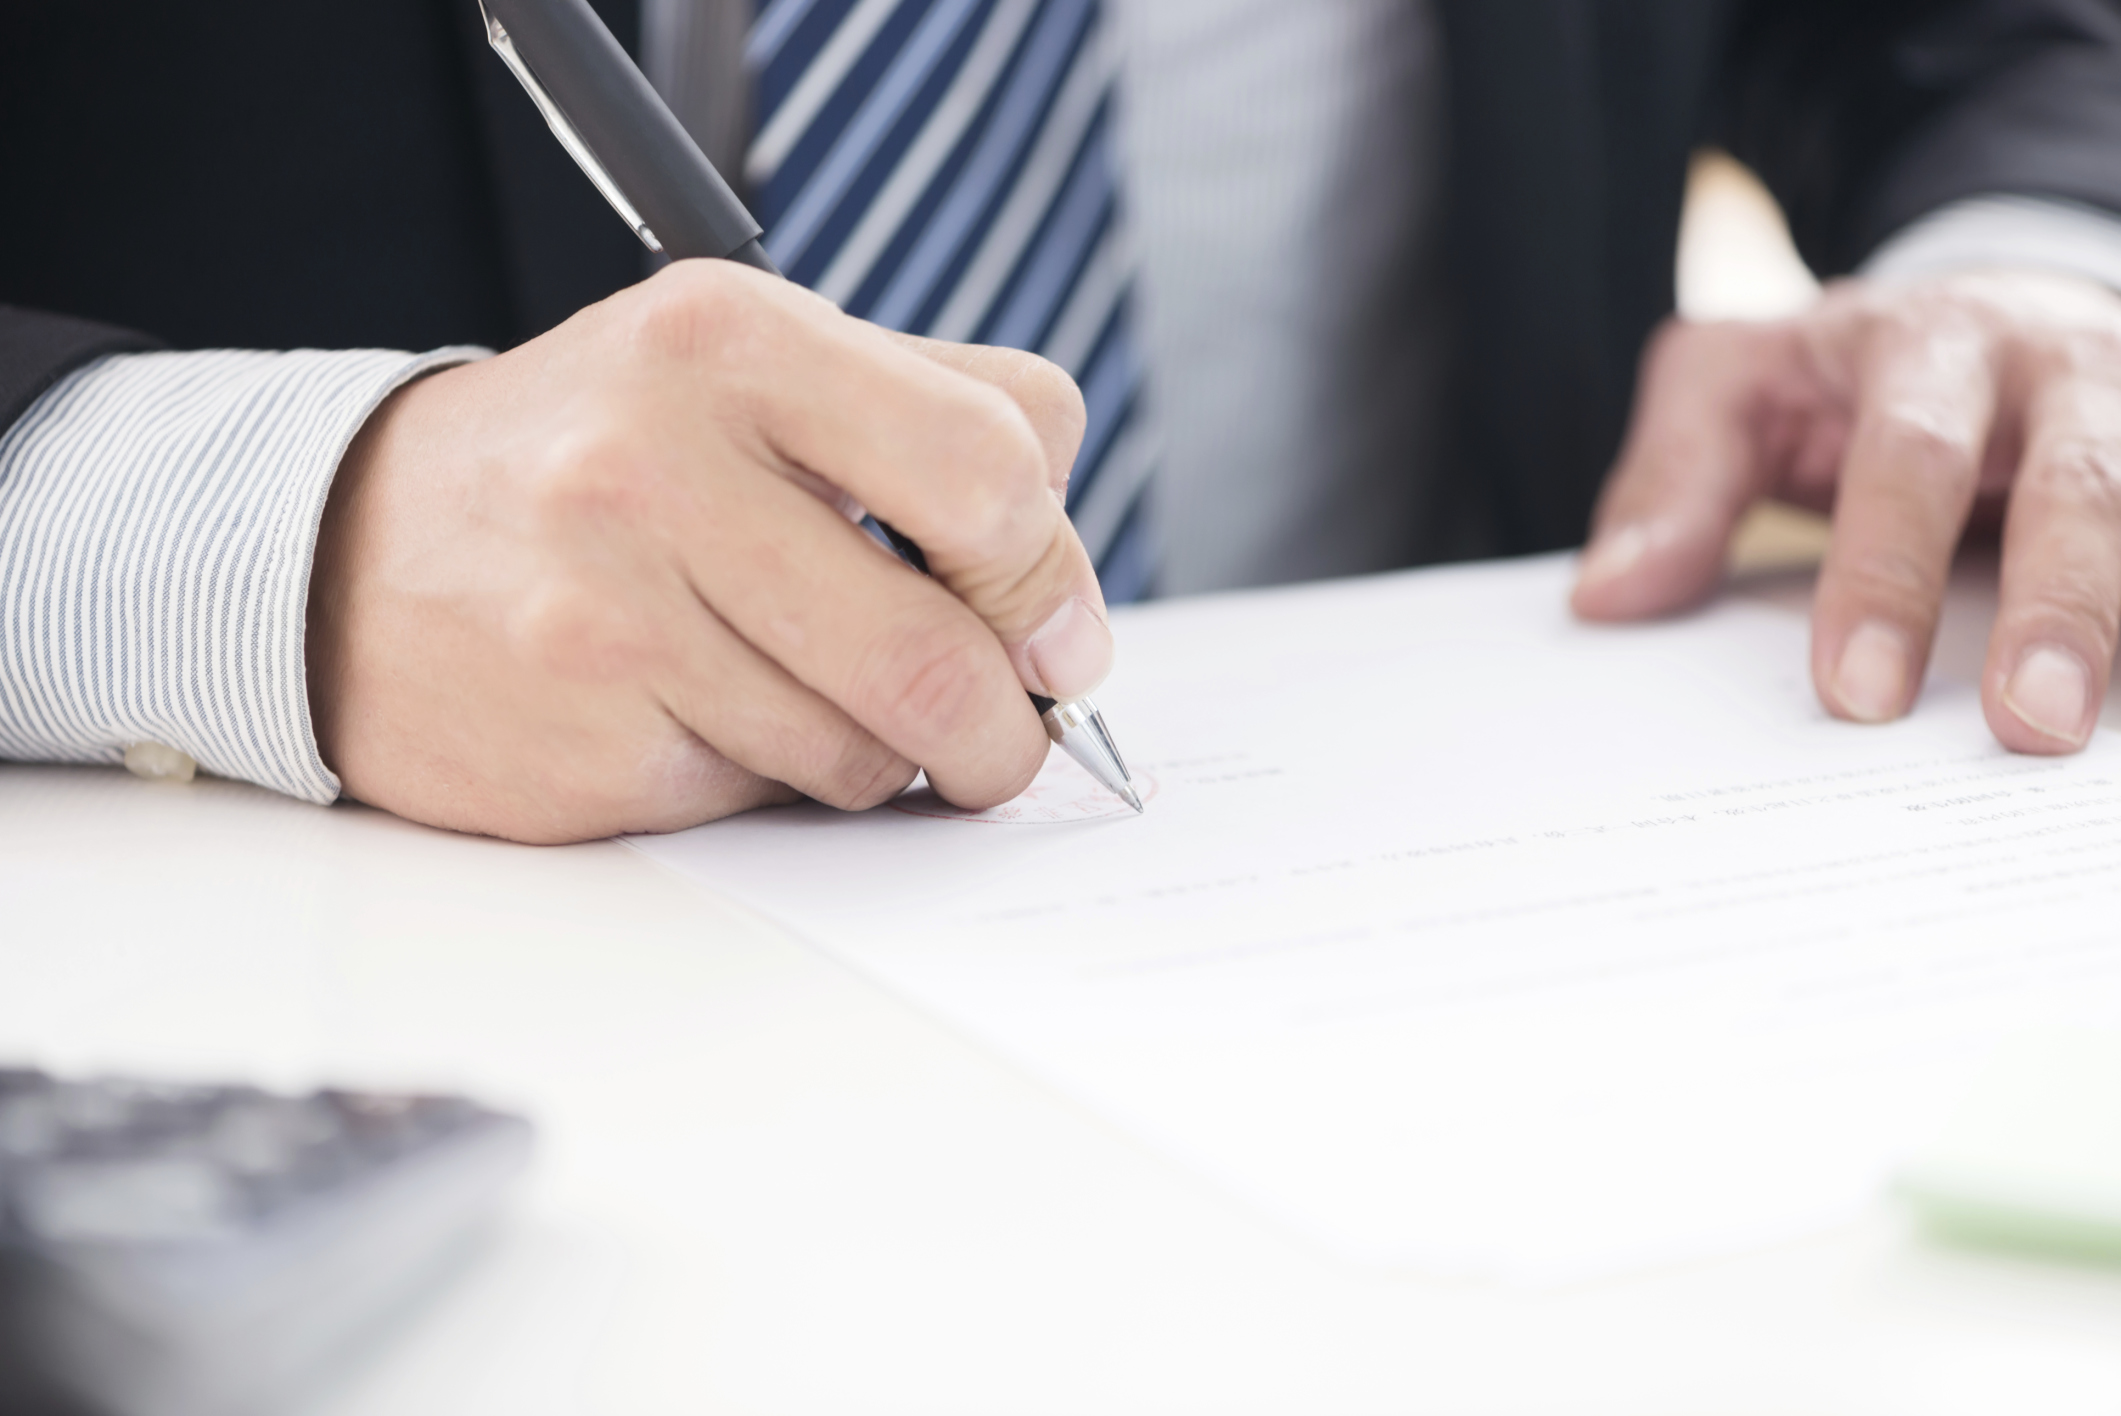 5 Reasons to Avoid Questionnaires During the Interview Process